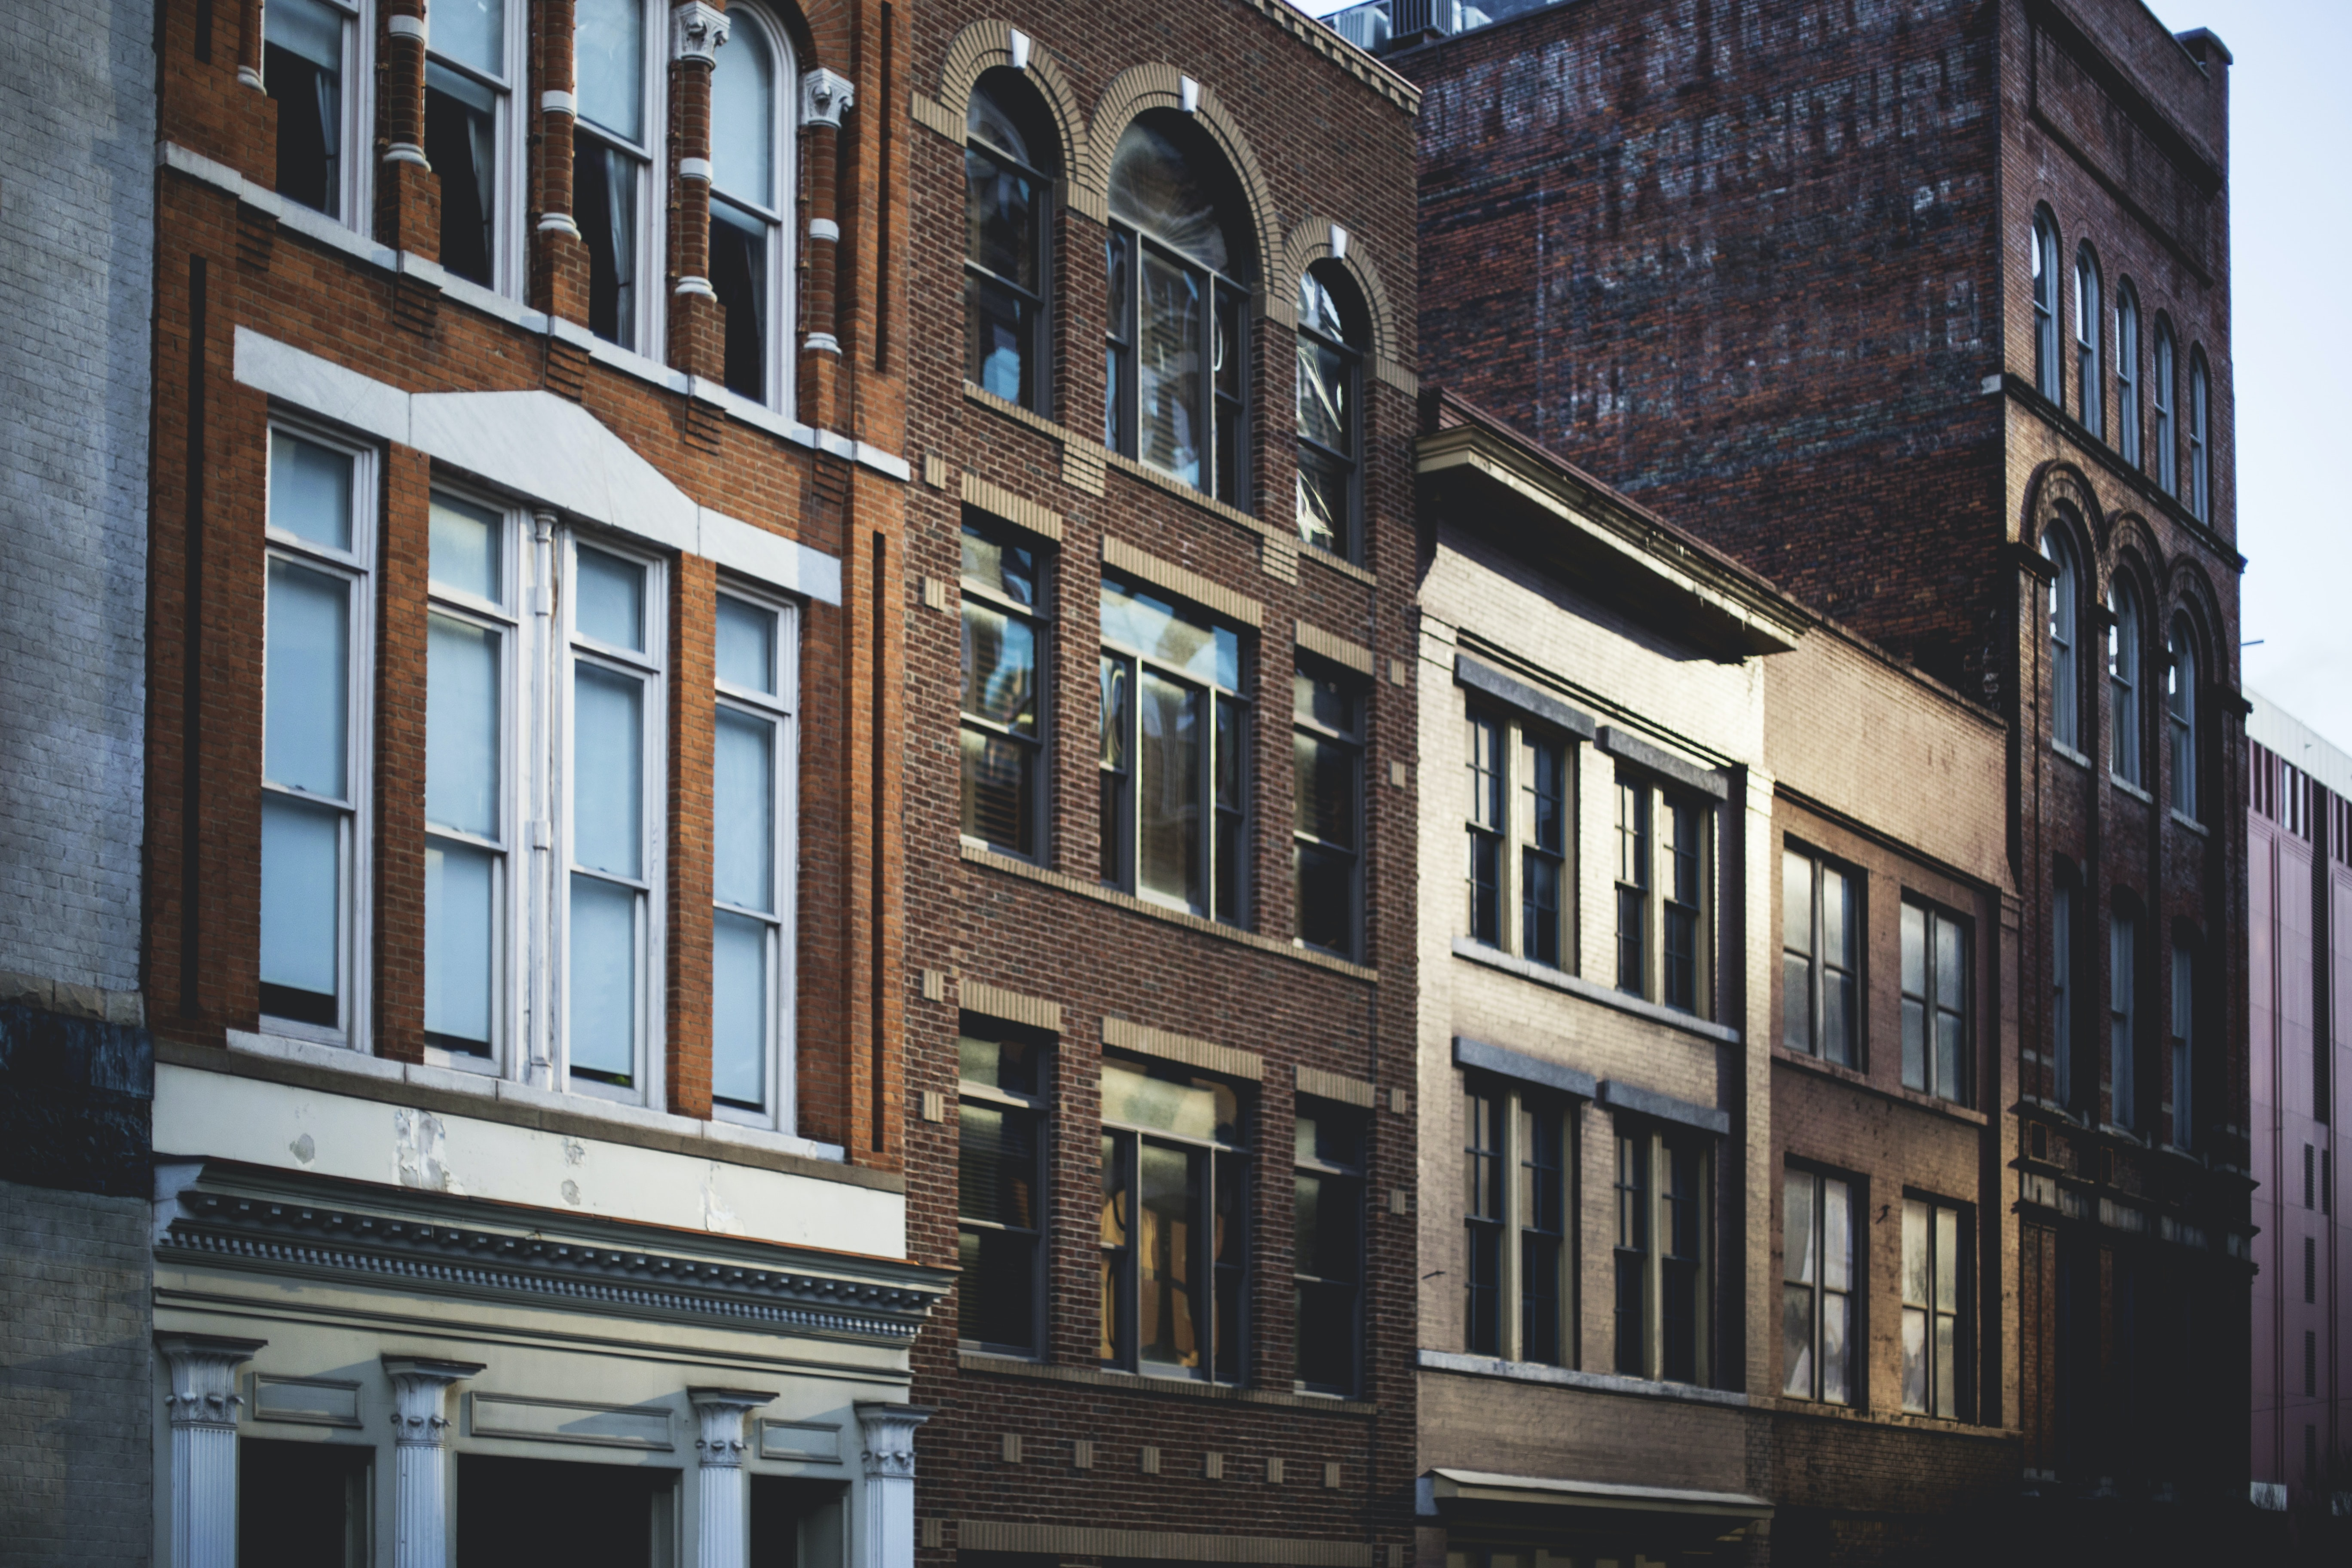 A row of old brick buildings in Nashville.